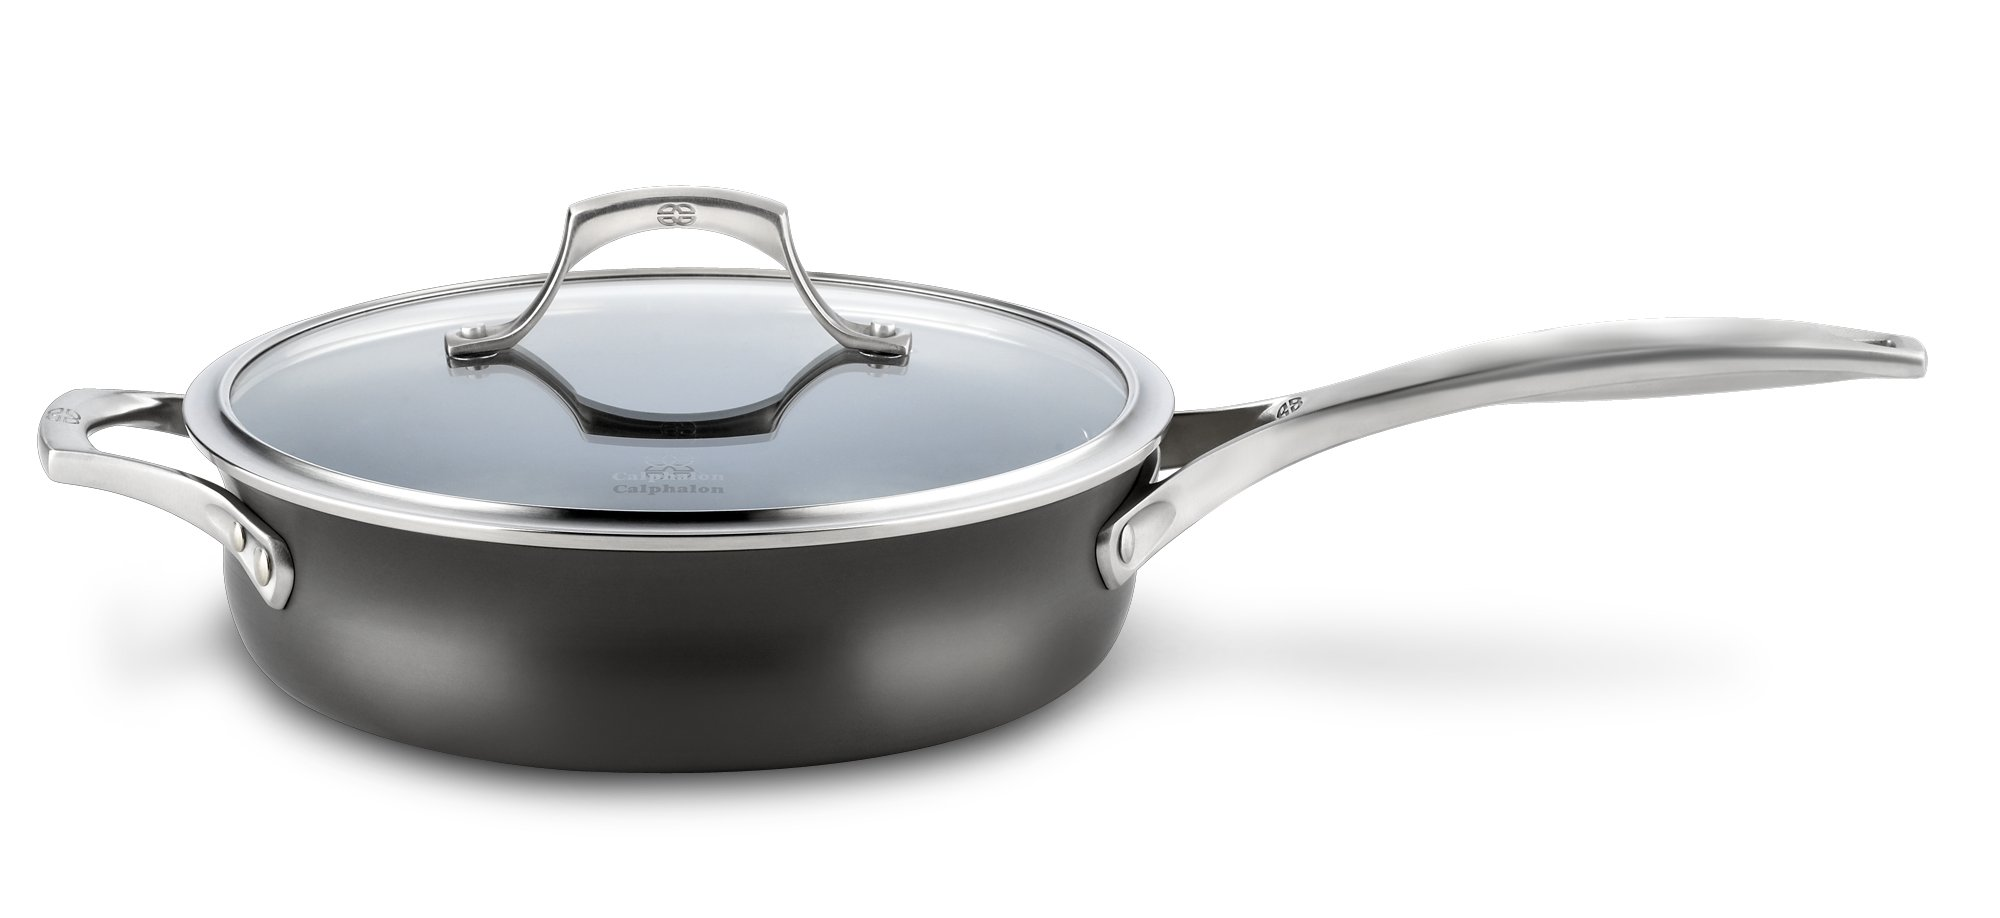 Calphalon Unison Nonstick 3-qt. Saute Pan with Cover